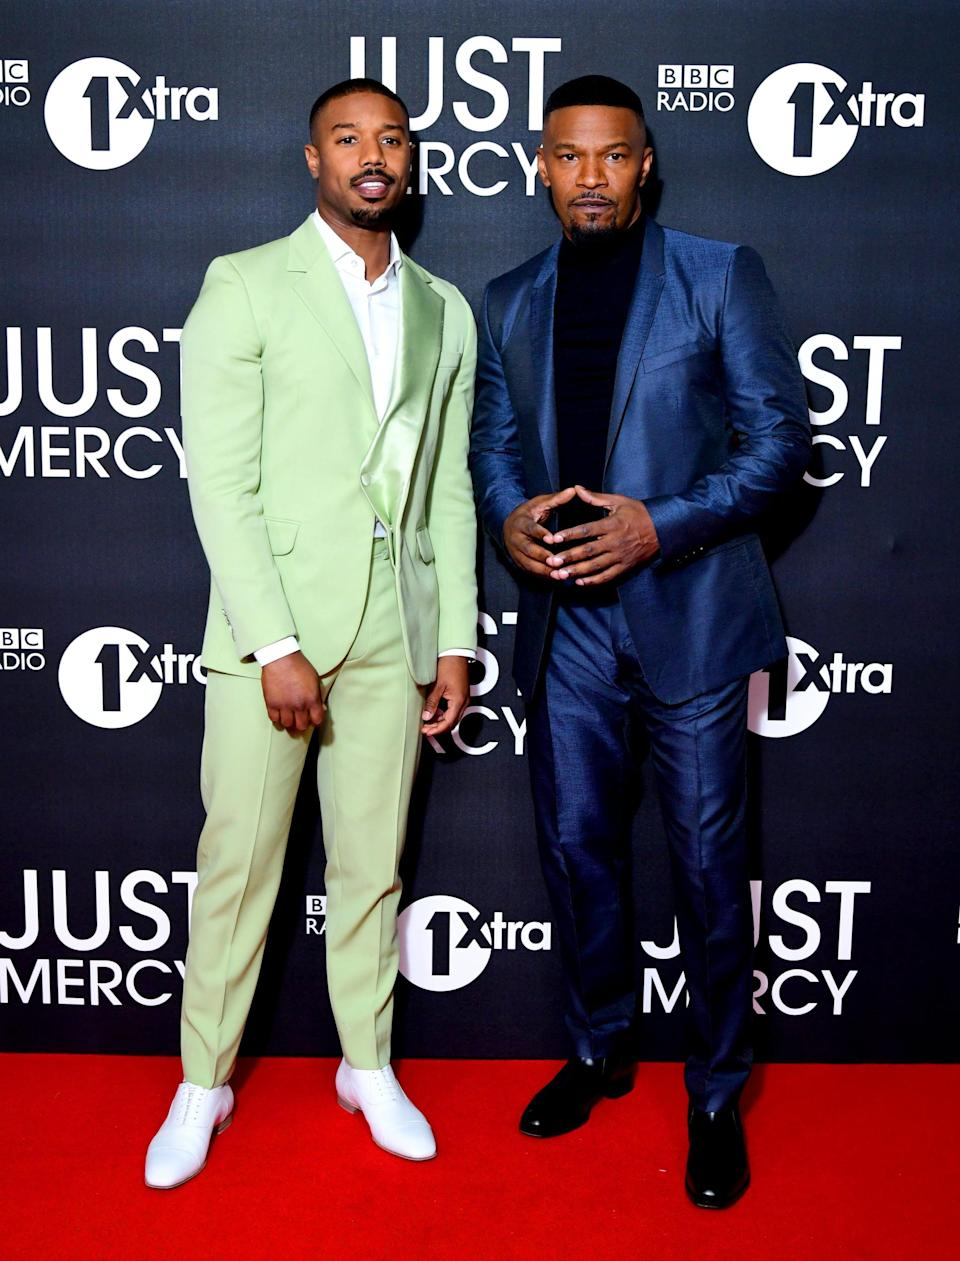 <p>He finished the look with crisp white Christian Louboutin shoes.</p>